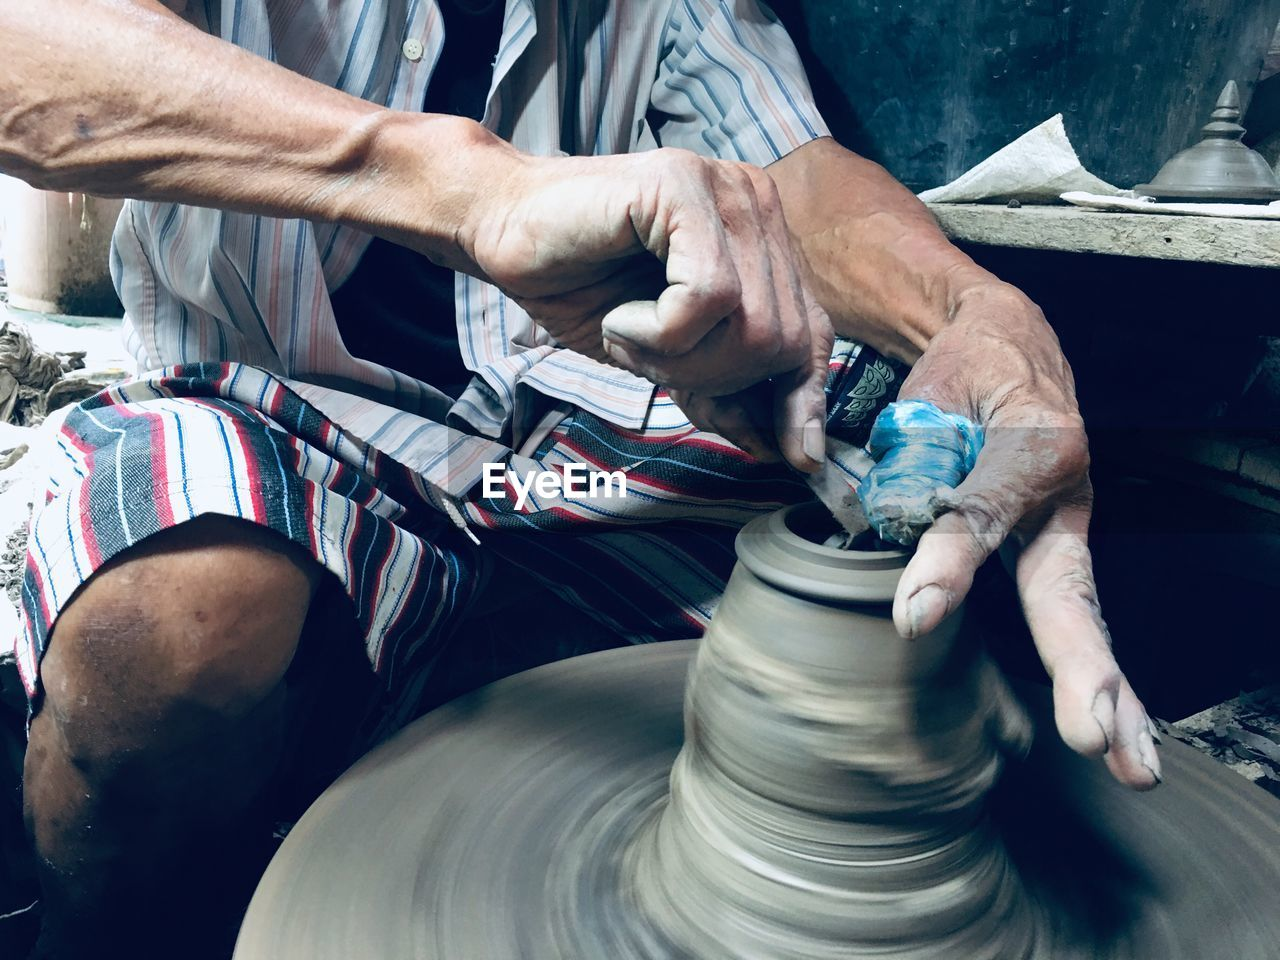 real people, working, art and craft, one person, skill, craft, workshop, human hand, occupation, hand, men, expertise, holding, human body part, creativity, indoors, making, craftsperson, motion